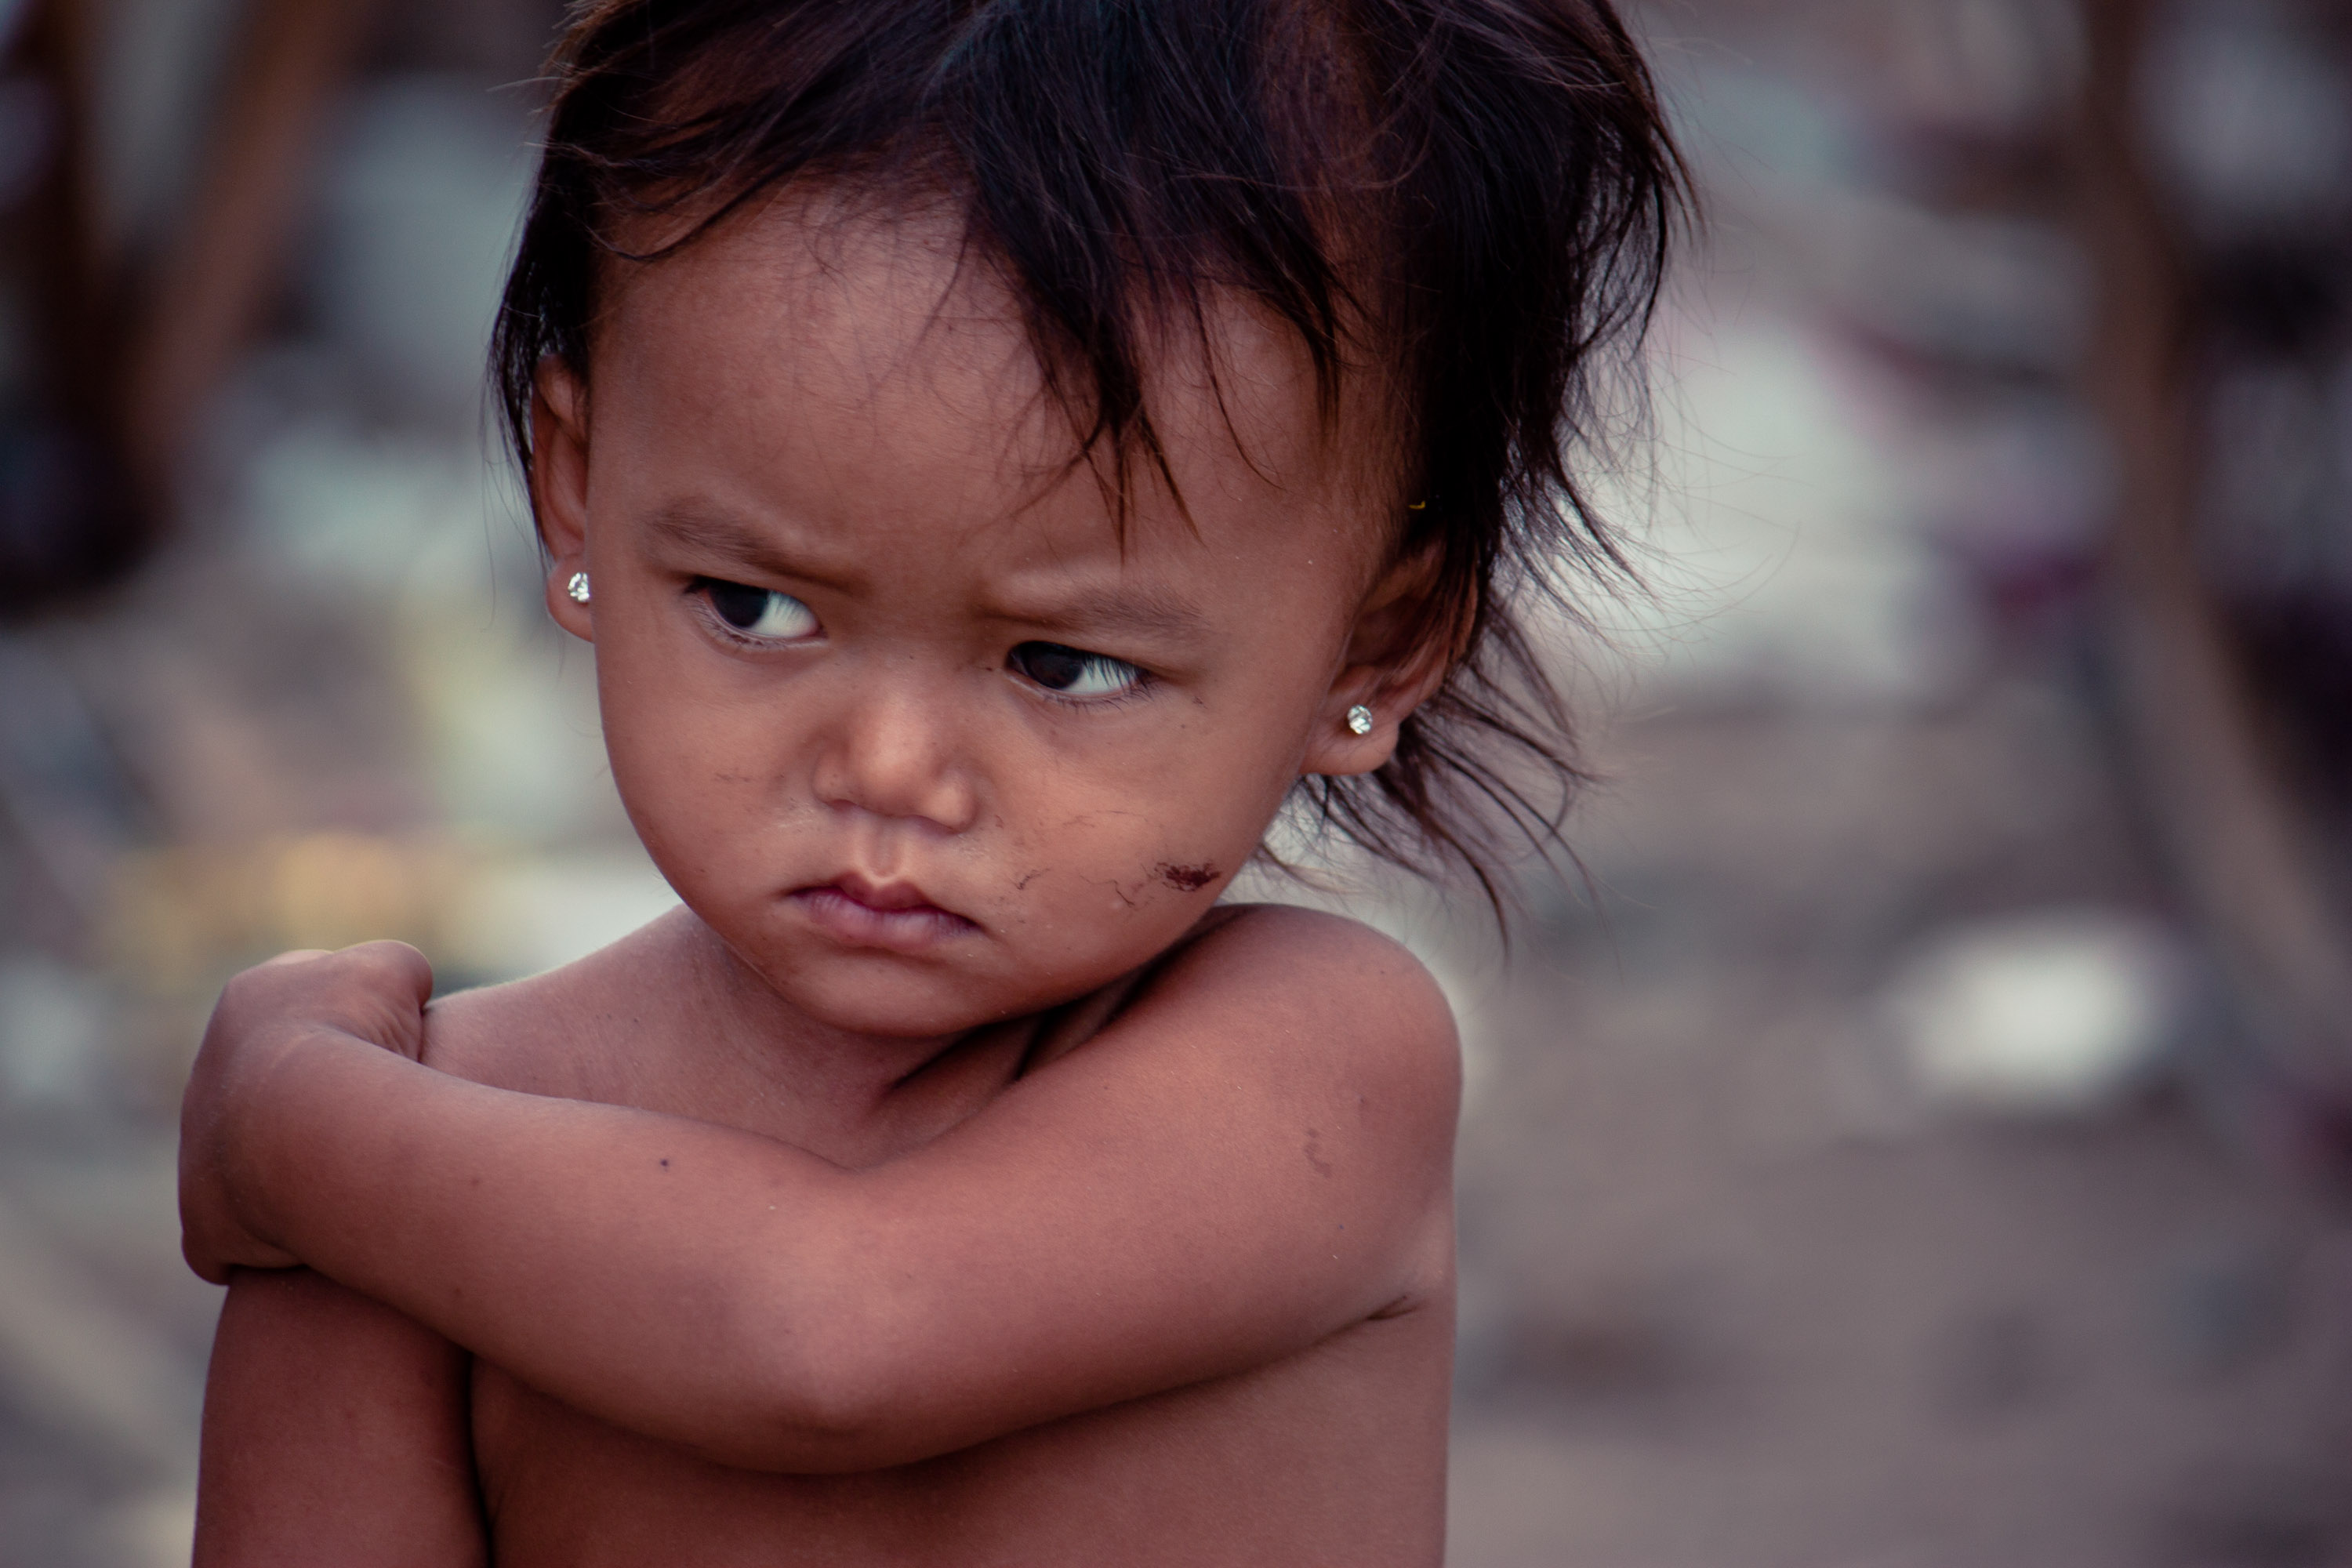 Little Cambodian Girl with a Scowl